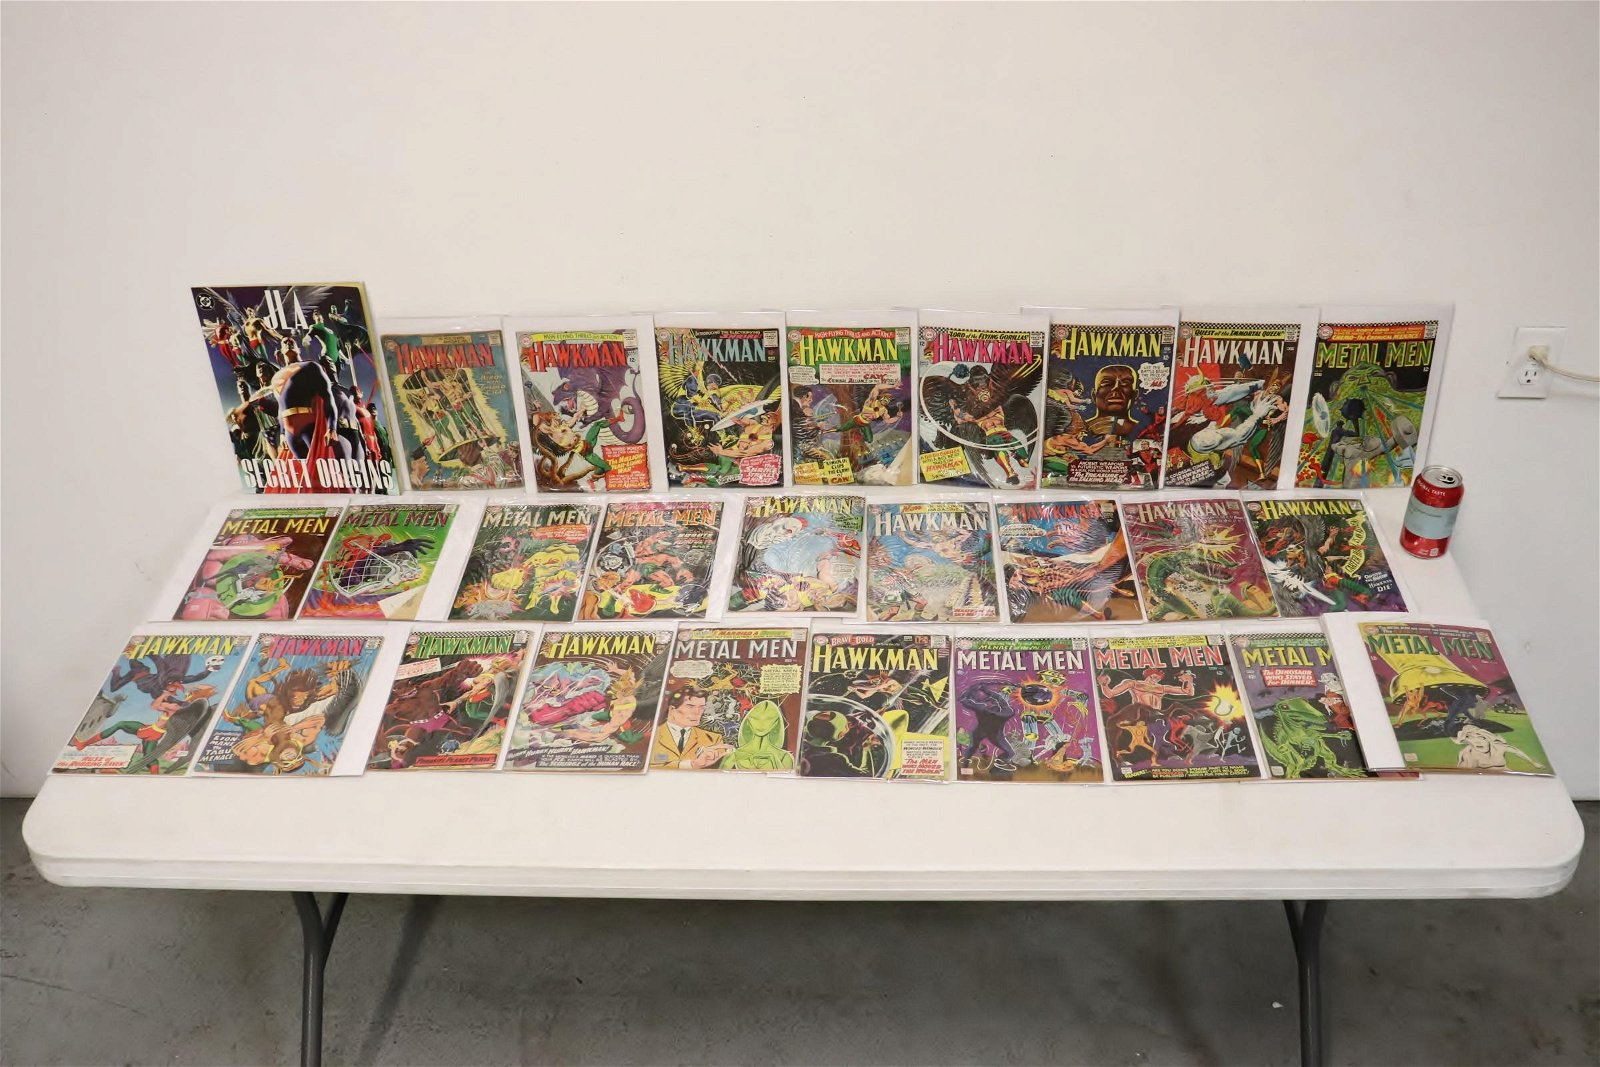 Approx. 28 early Hawkman and Metal Man comic book